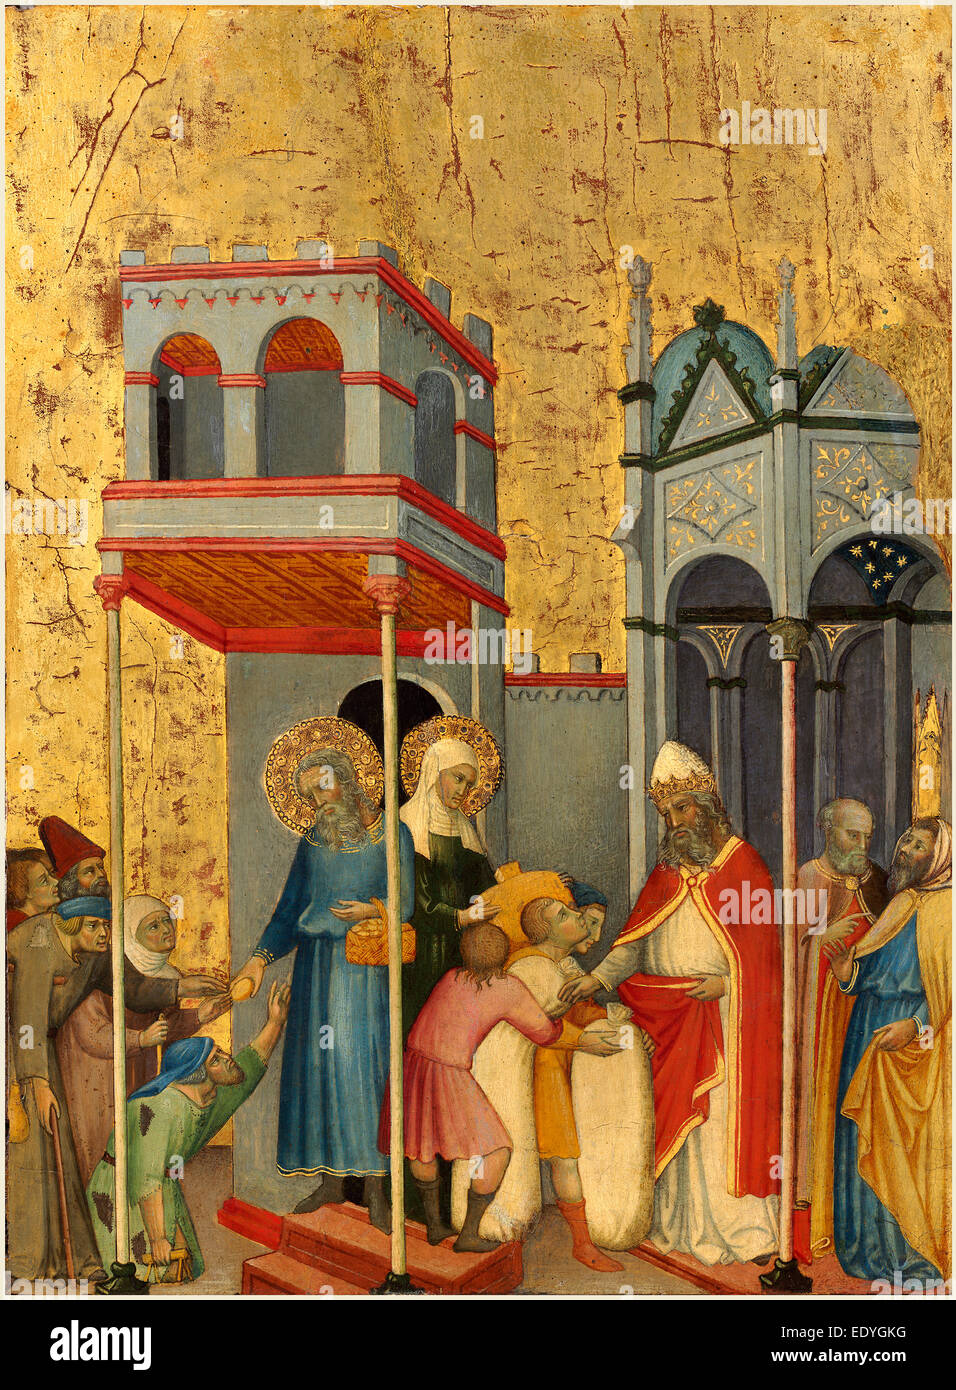 Andrea di Bartolo, Italian (documented from 1389-died 1428), Joachim and the Beggars, c. 1400, tempera on panel - Stock Image